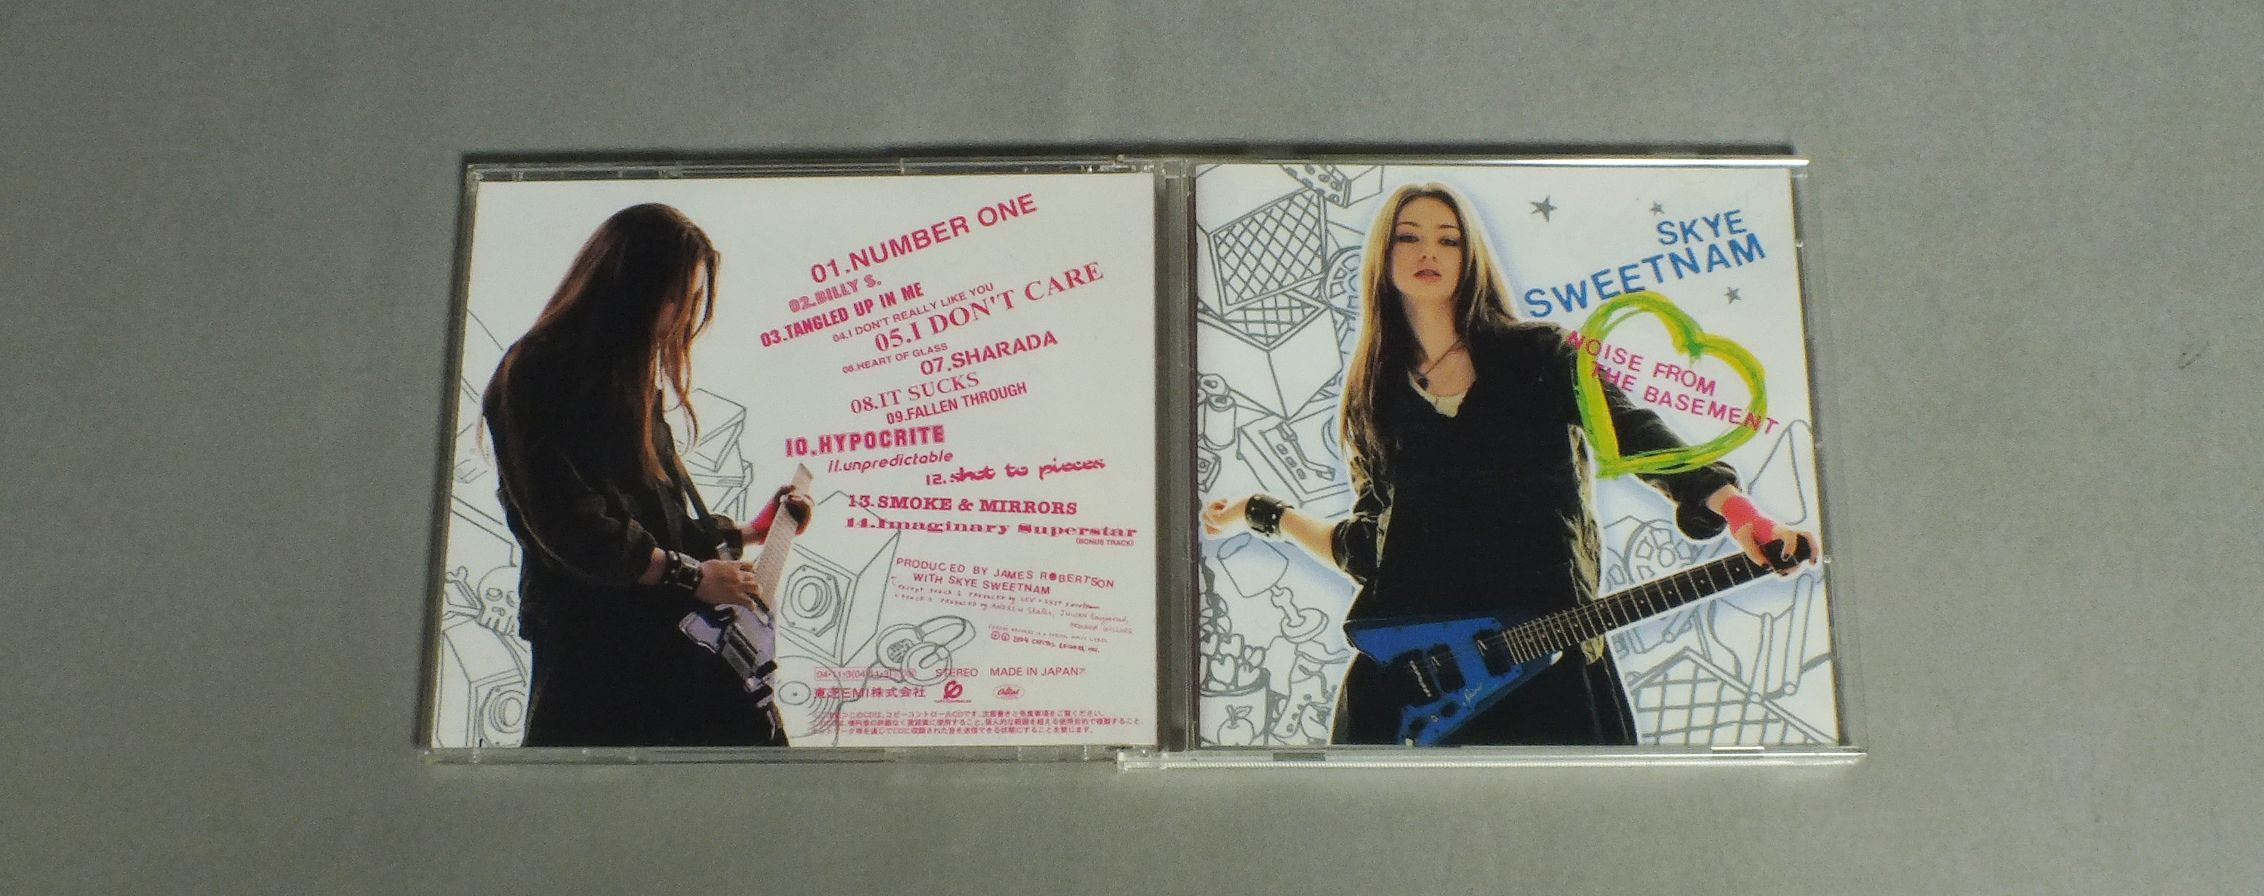 Noise From Basement By Skye Sweetnam, CD With Frere-53